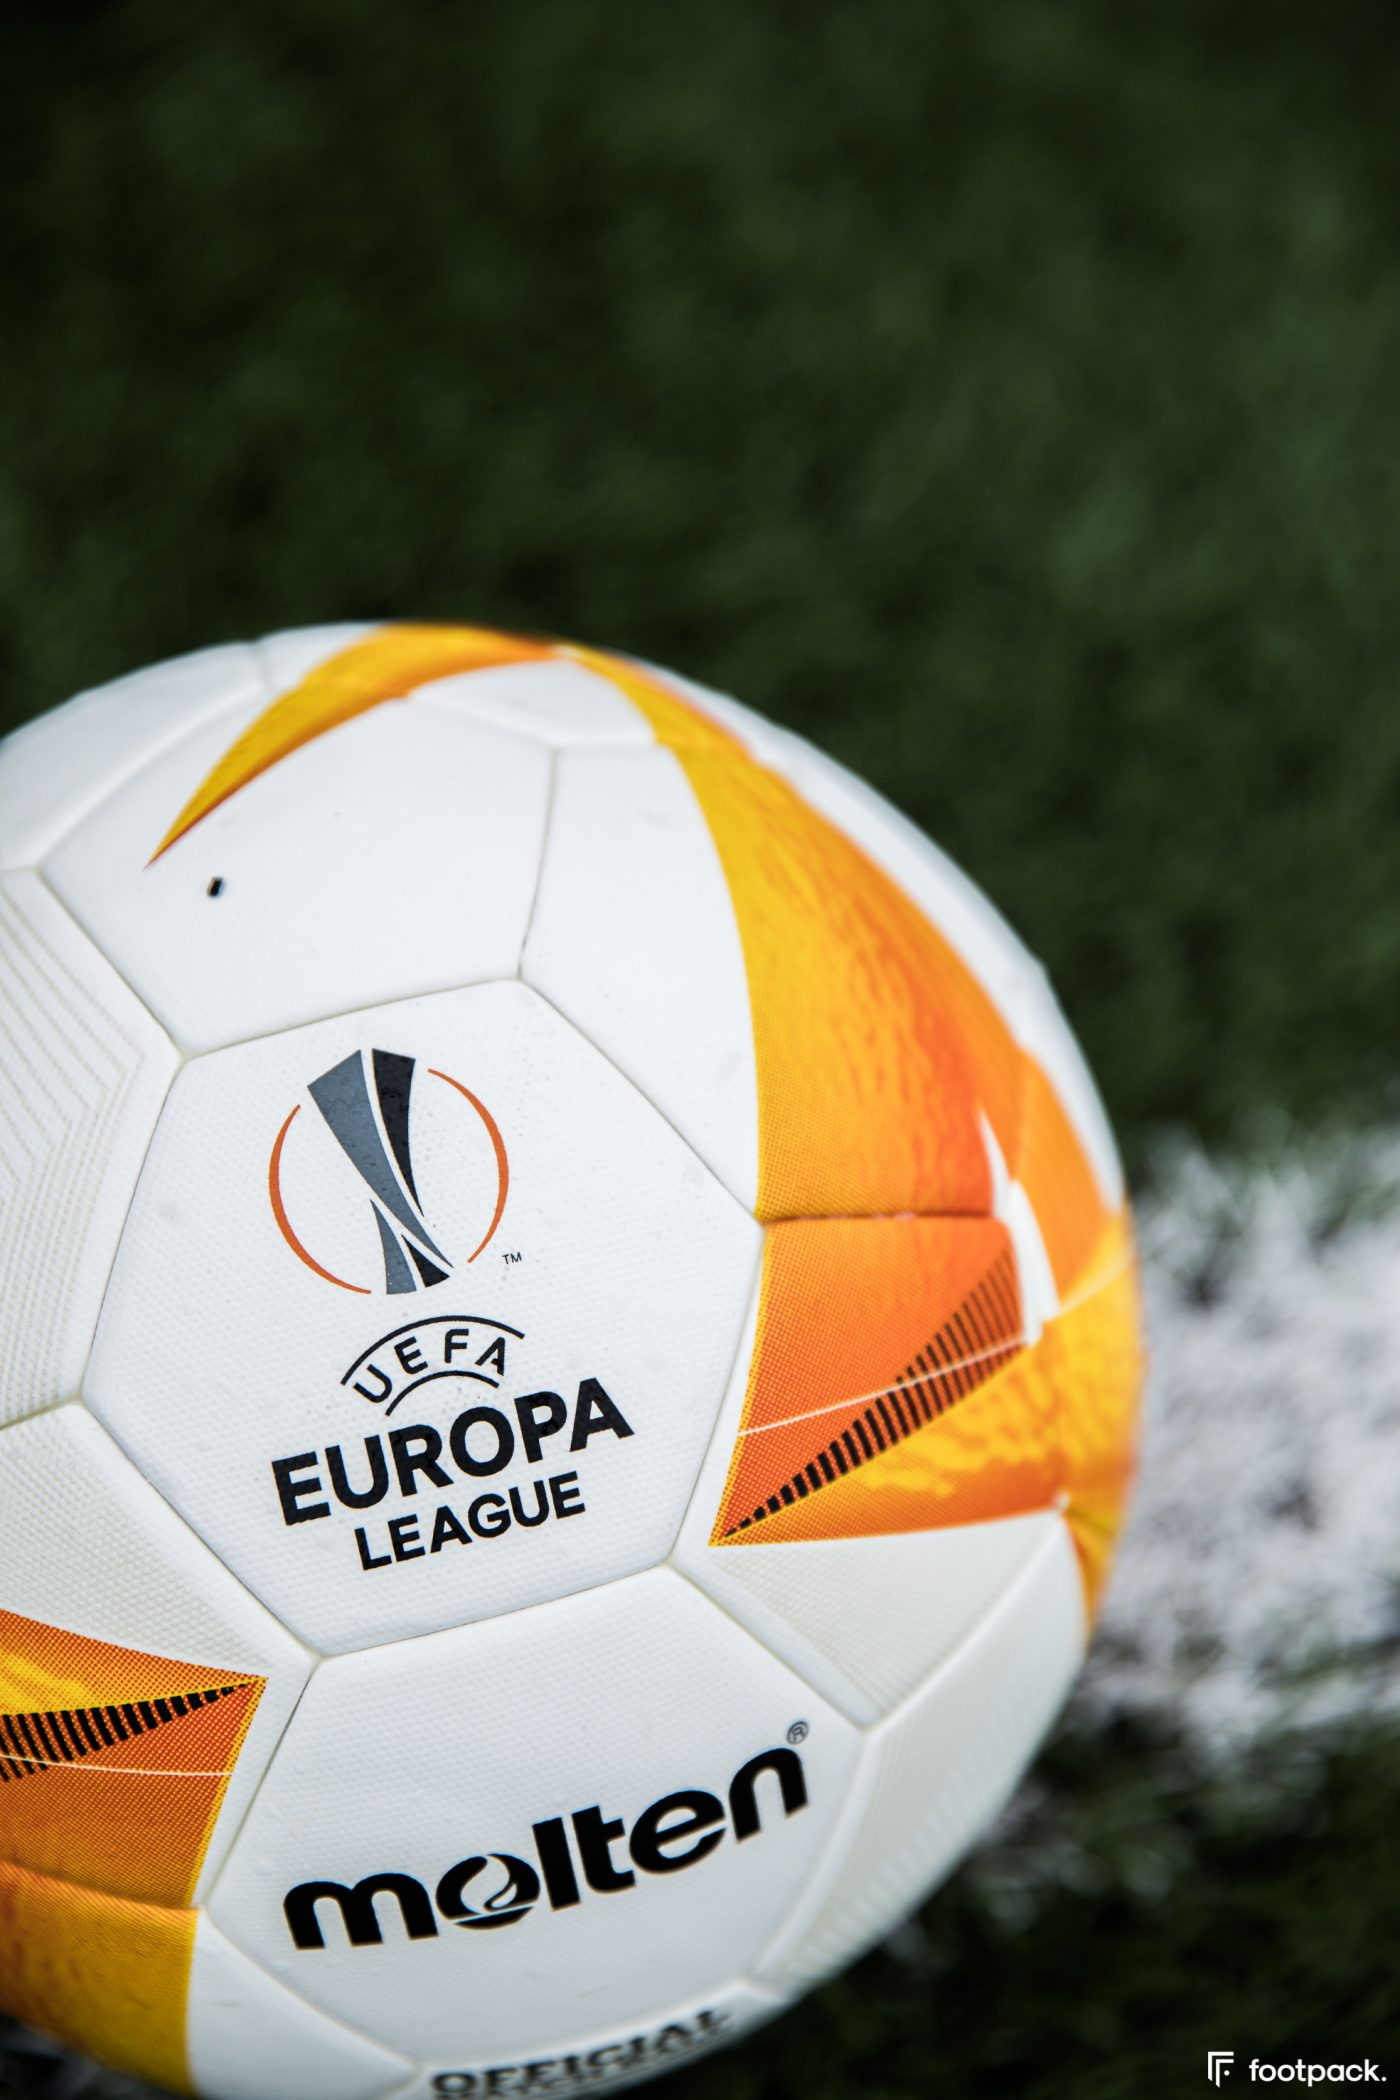 molten-europa-league-conference-league-2